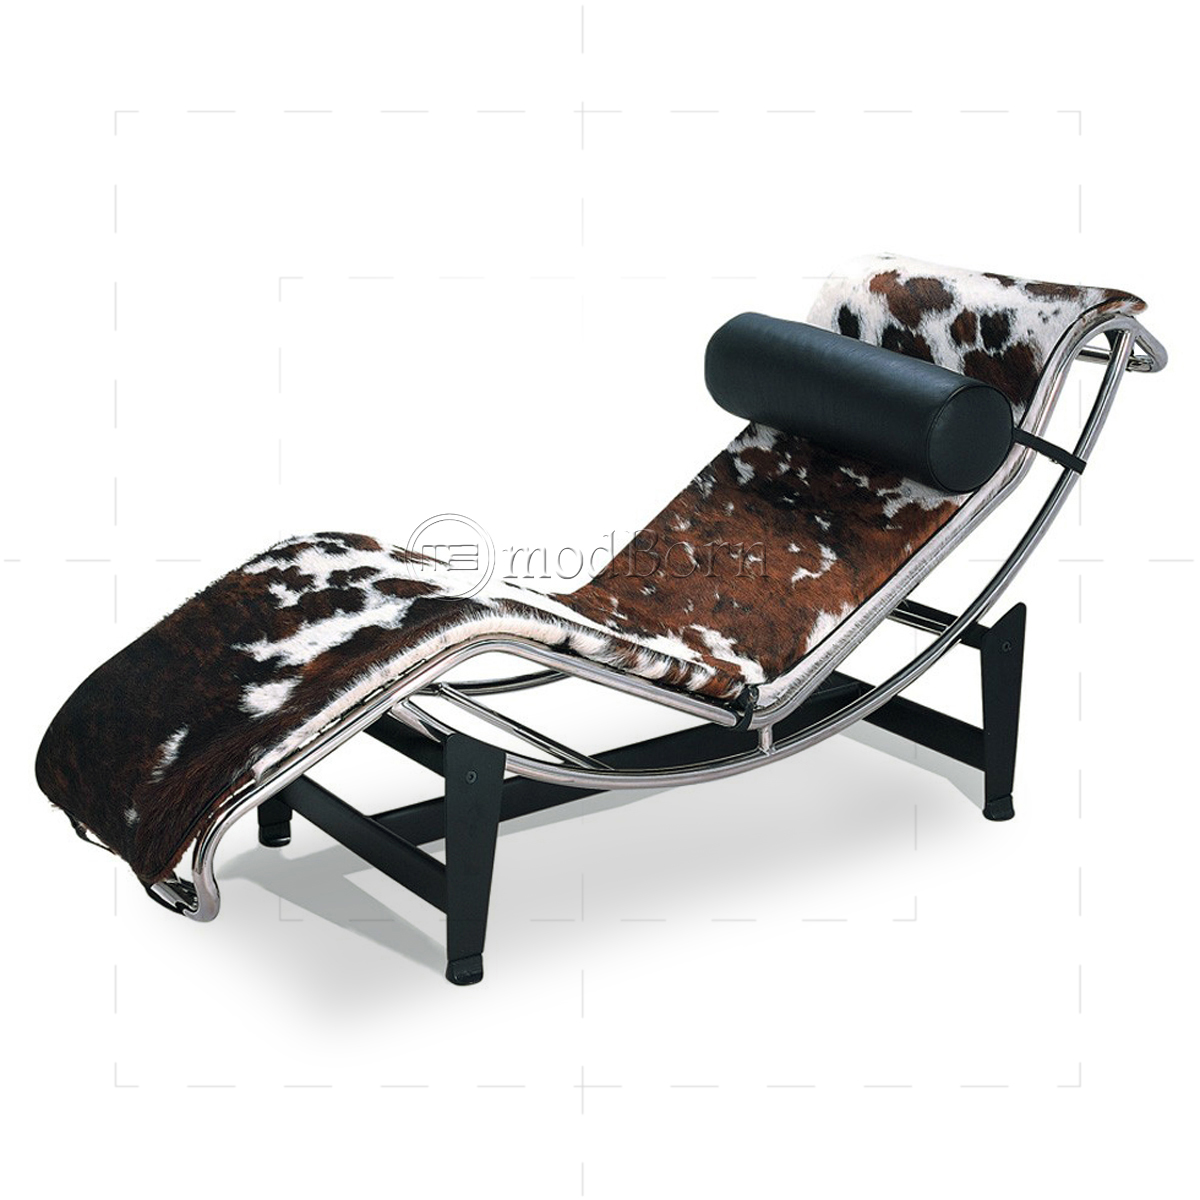 Le corbusier style lc4 chaise longue pony leather replica for Chaise longue le corbusier prezzo